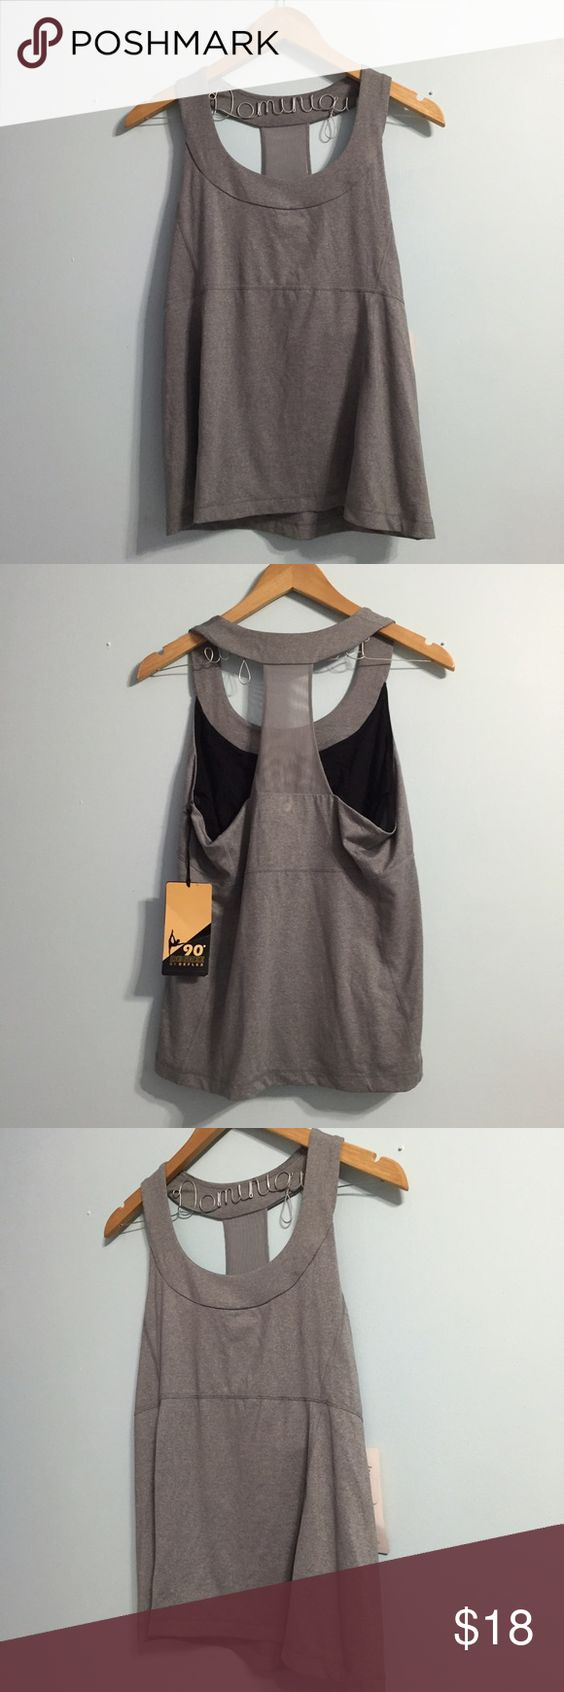 90° Gray Athletic Top (XL) 90° Gray Athletic Top in size XL.   Features: T-back style  Rounded neck Built in mesh bra.  Wicking material.   New with tags Unworn Danskin Tops